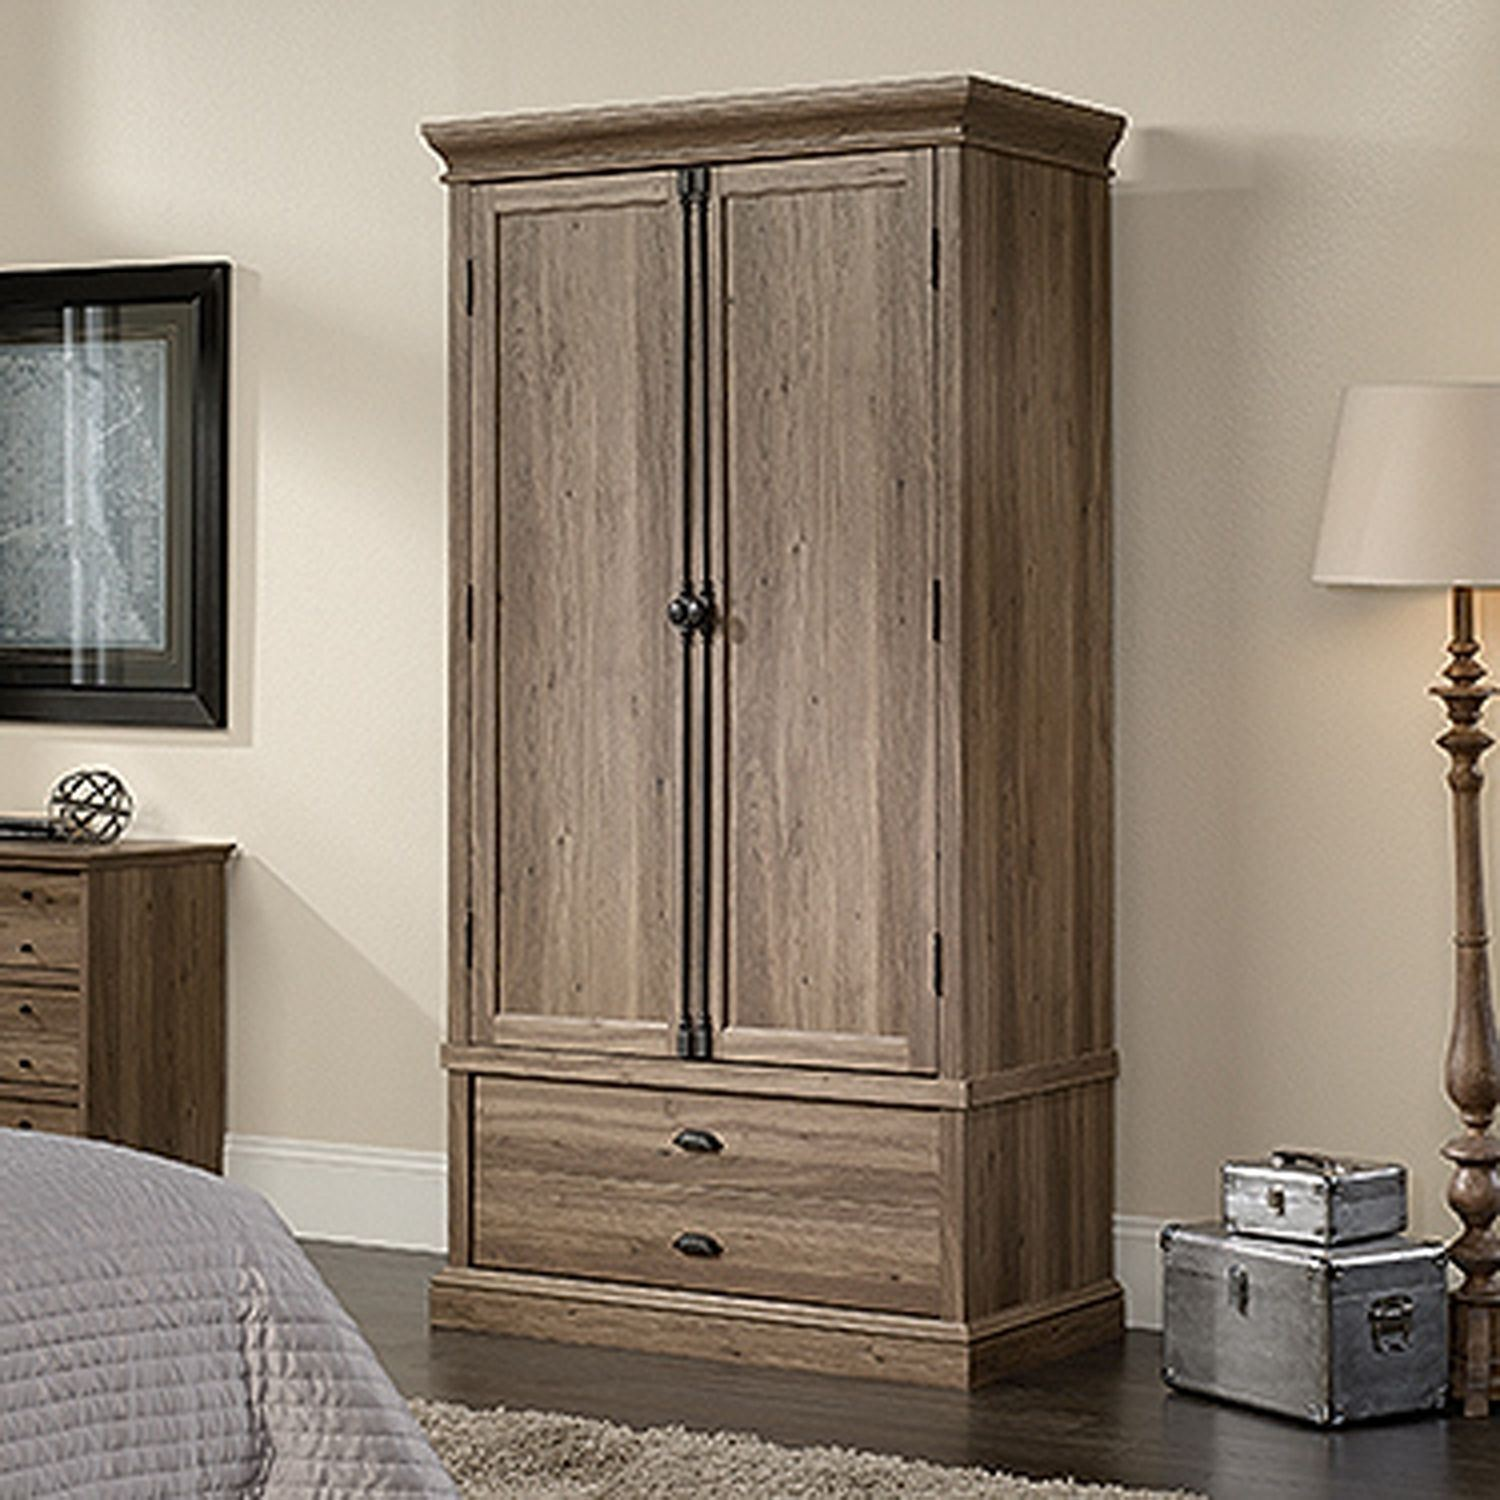 Charmant Picture Of Barrister Lane Bedroom Armoire Salt Oak * D